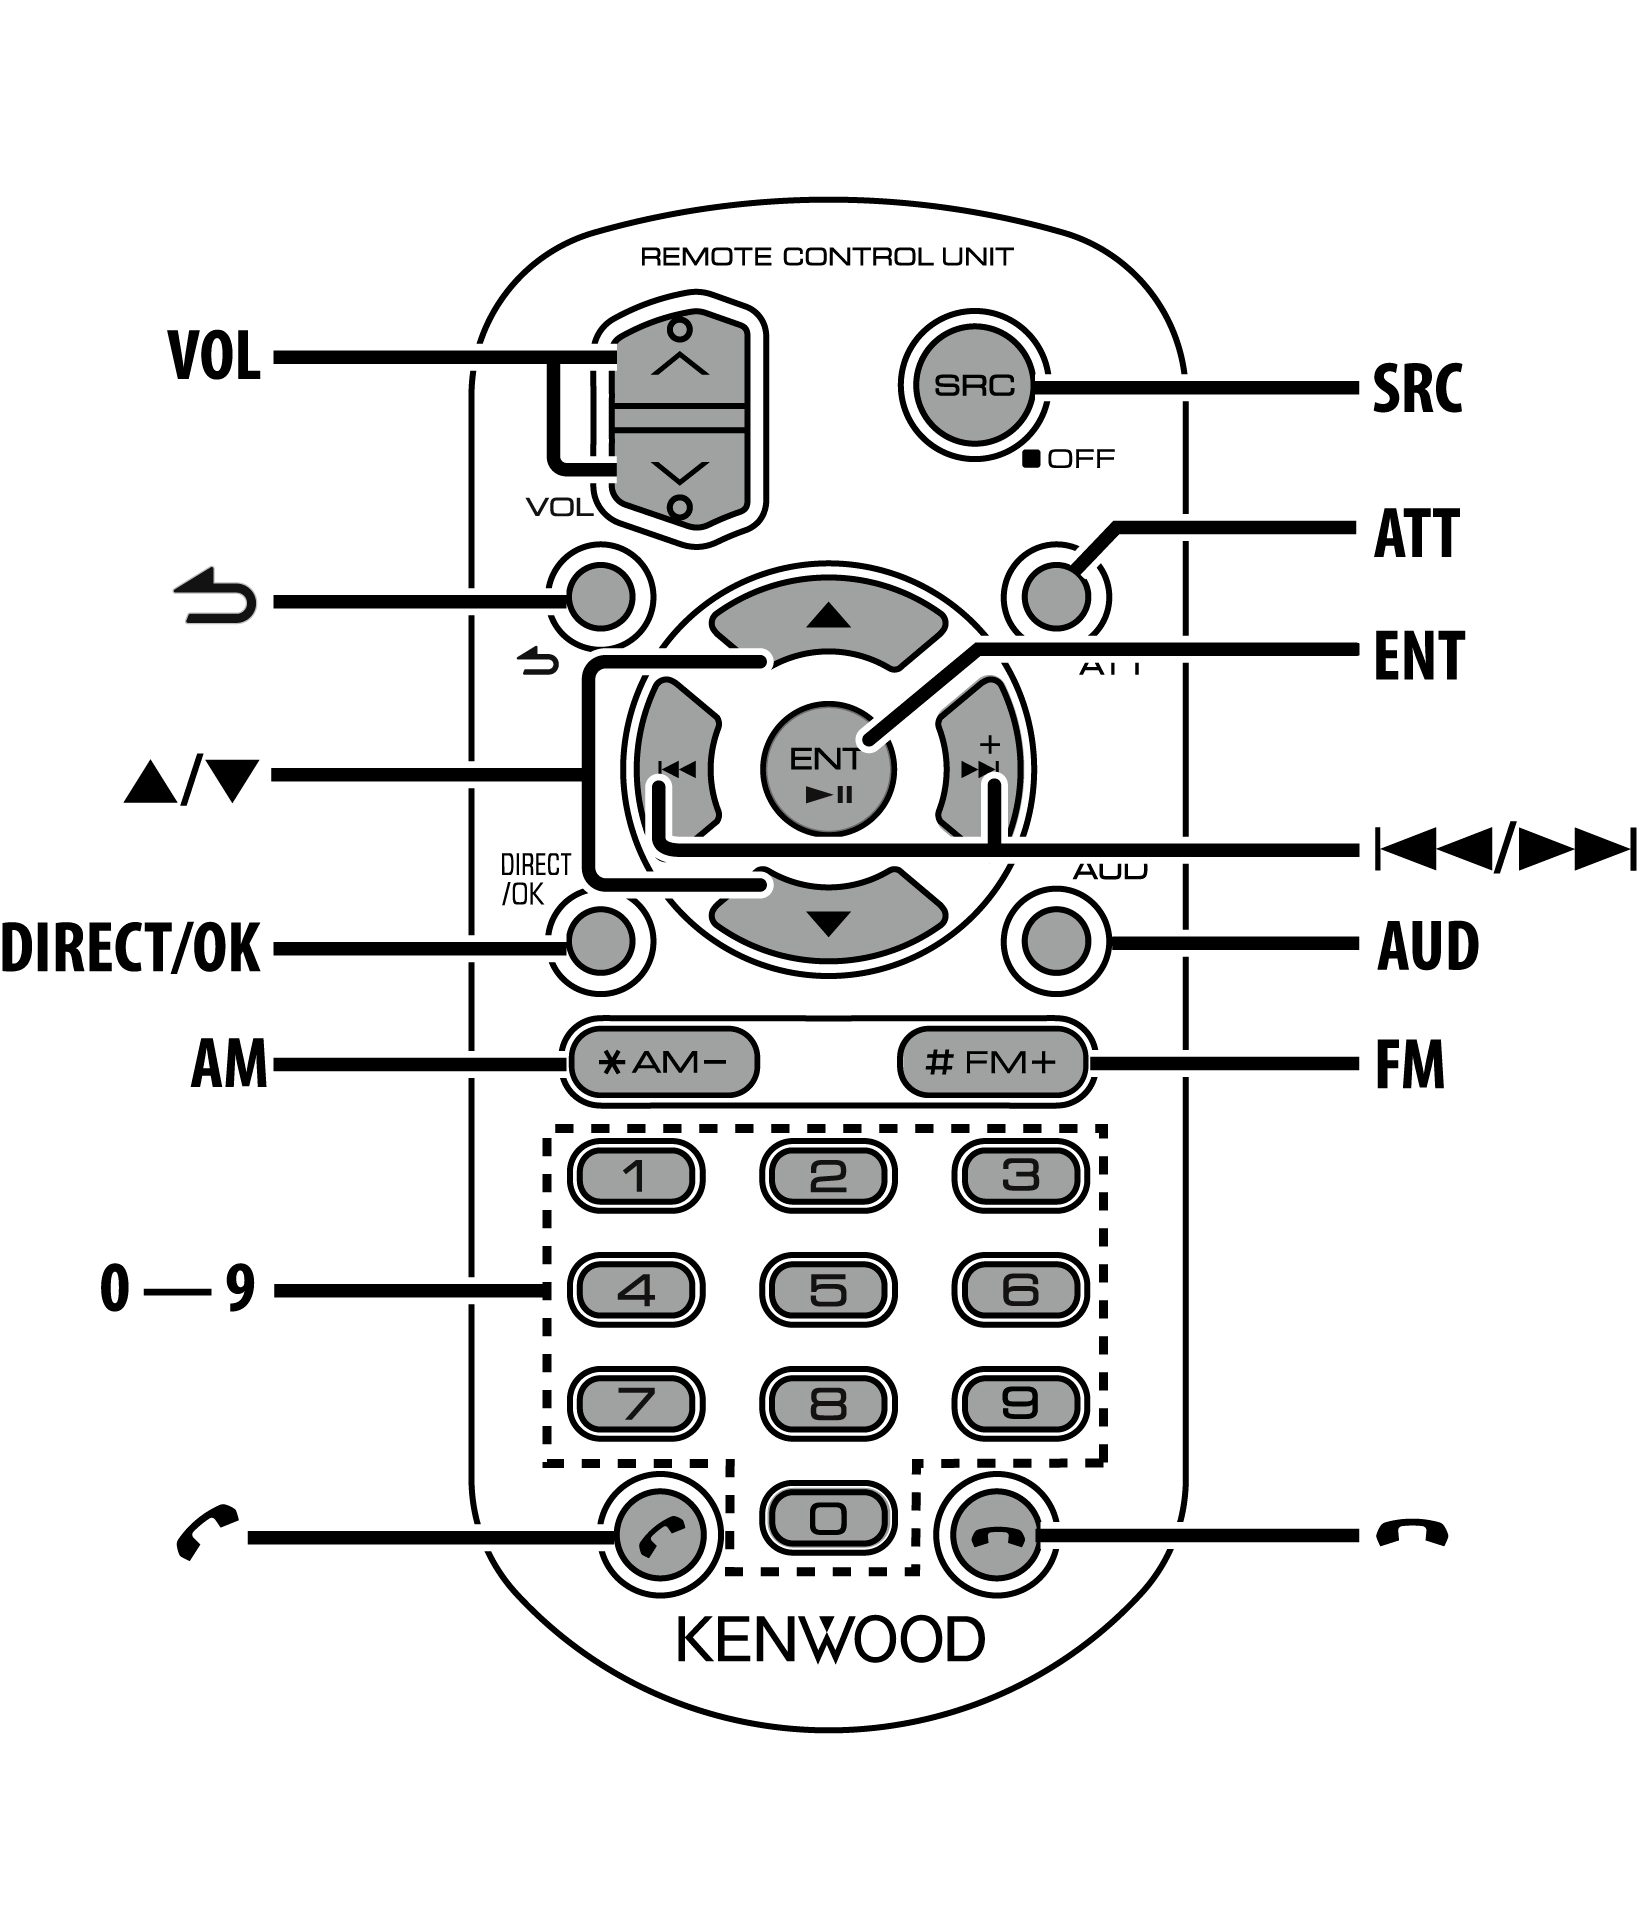 Wiring Diagram Kenwood Kdc X897 Start Building A 252u Car Stereo X997 Bt955hd Bt855u X697 655u Kmr 555u Rh Manual Com 248u